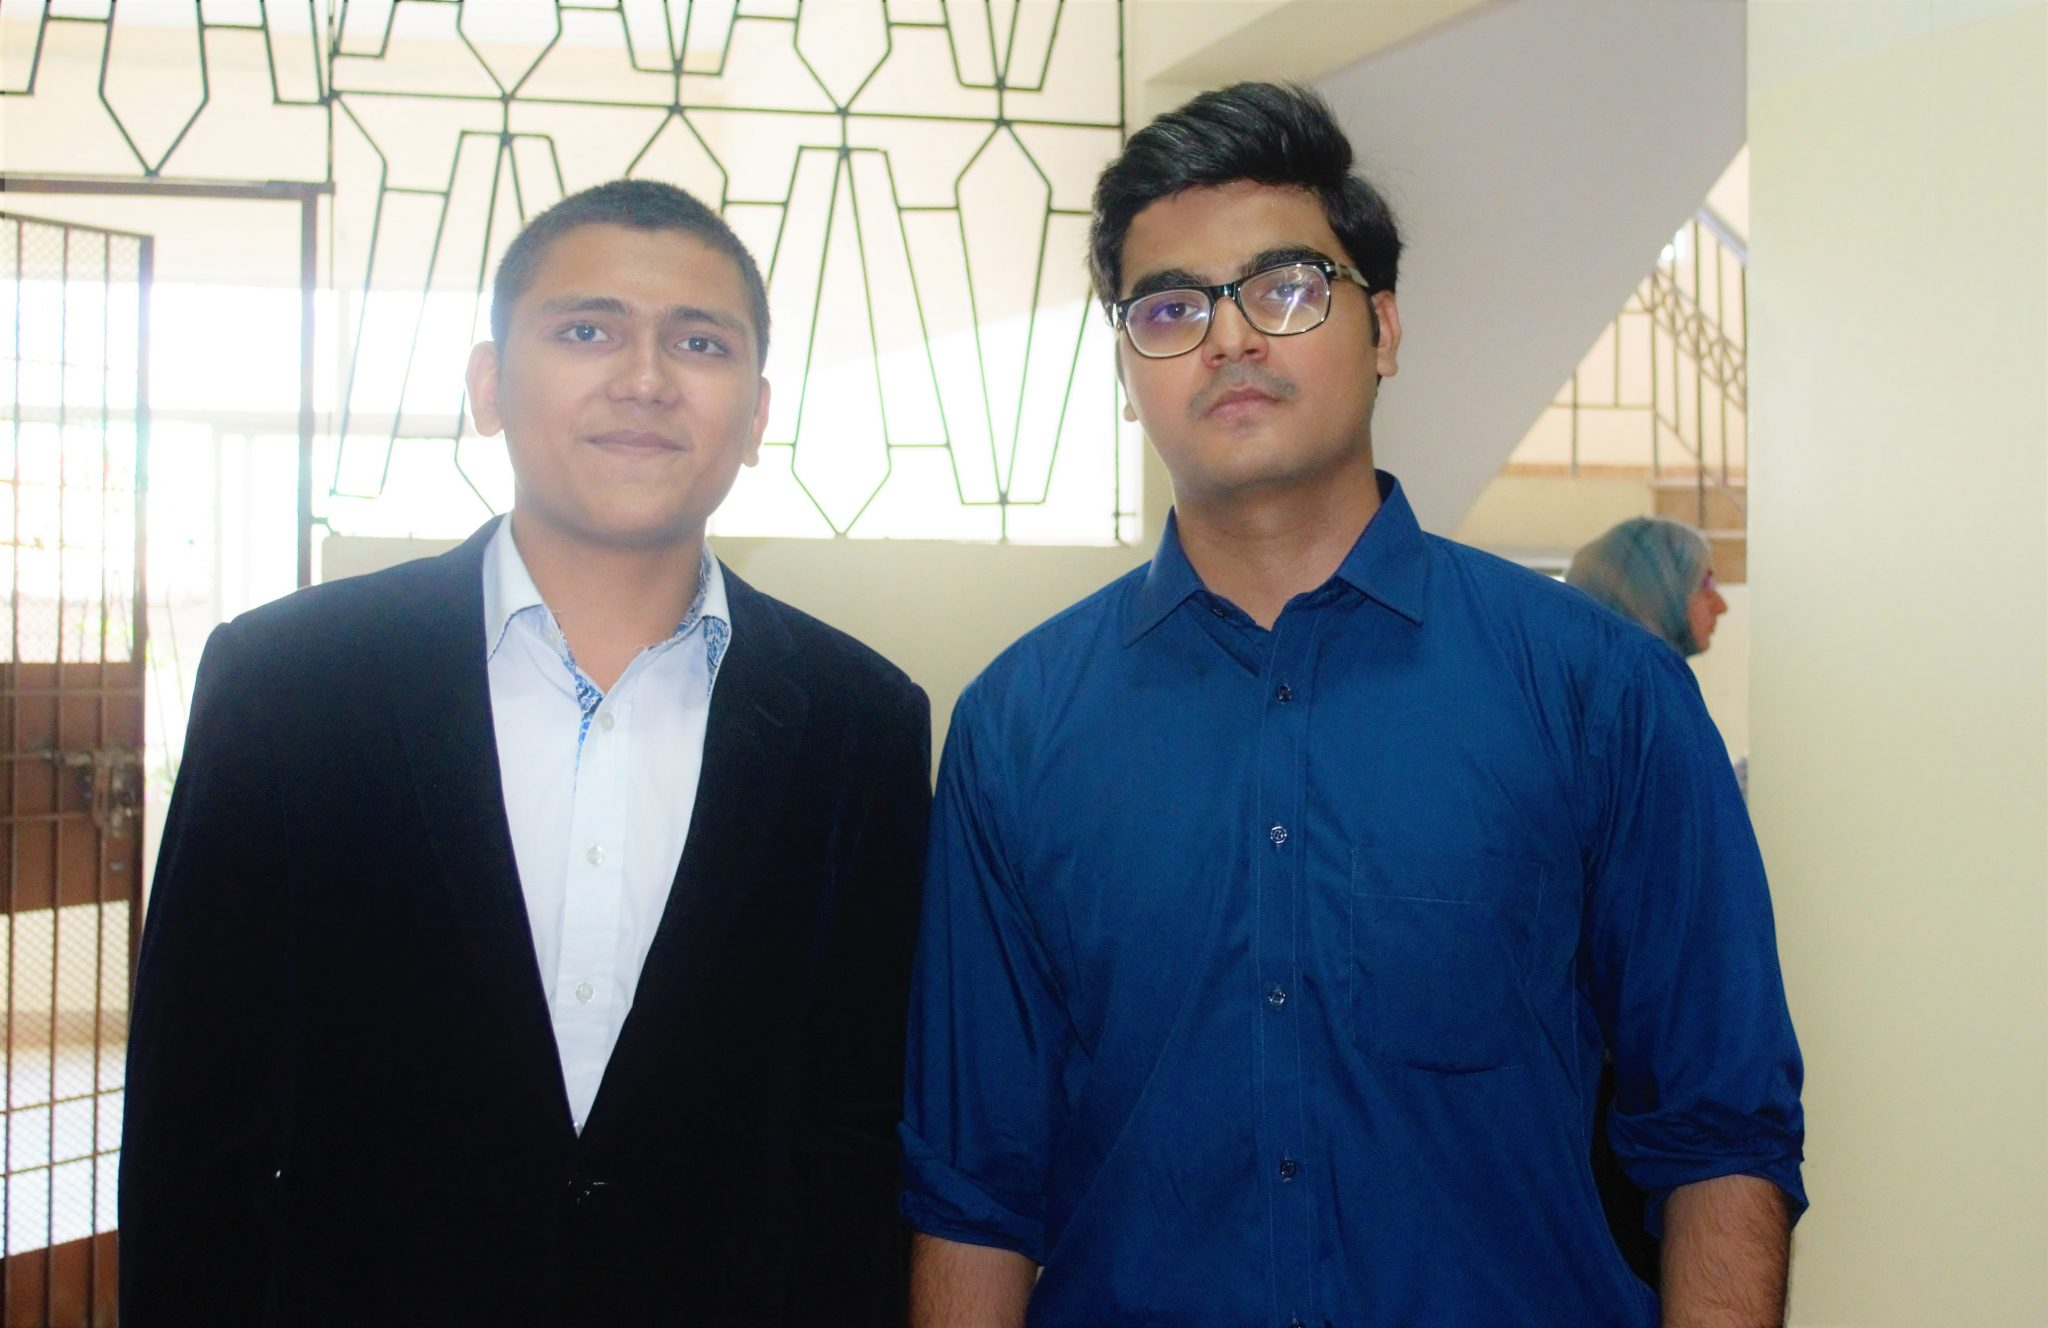 Abdul Samad Essani With Syed Faizan Ali At Workshop